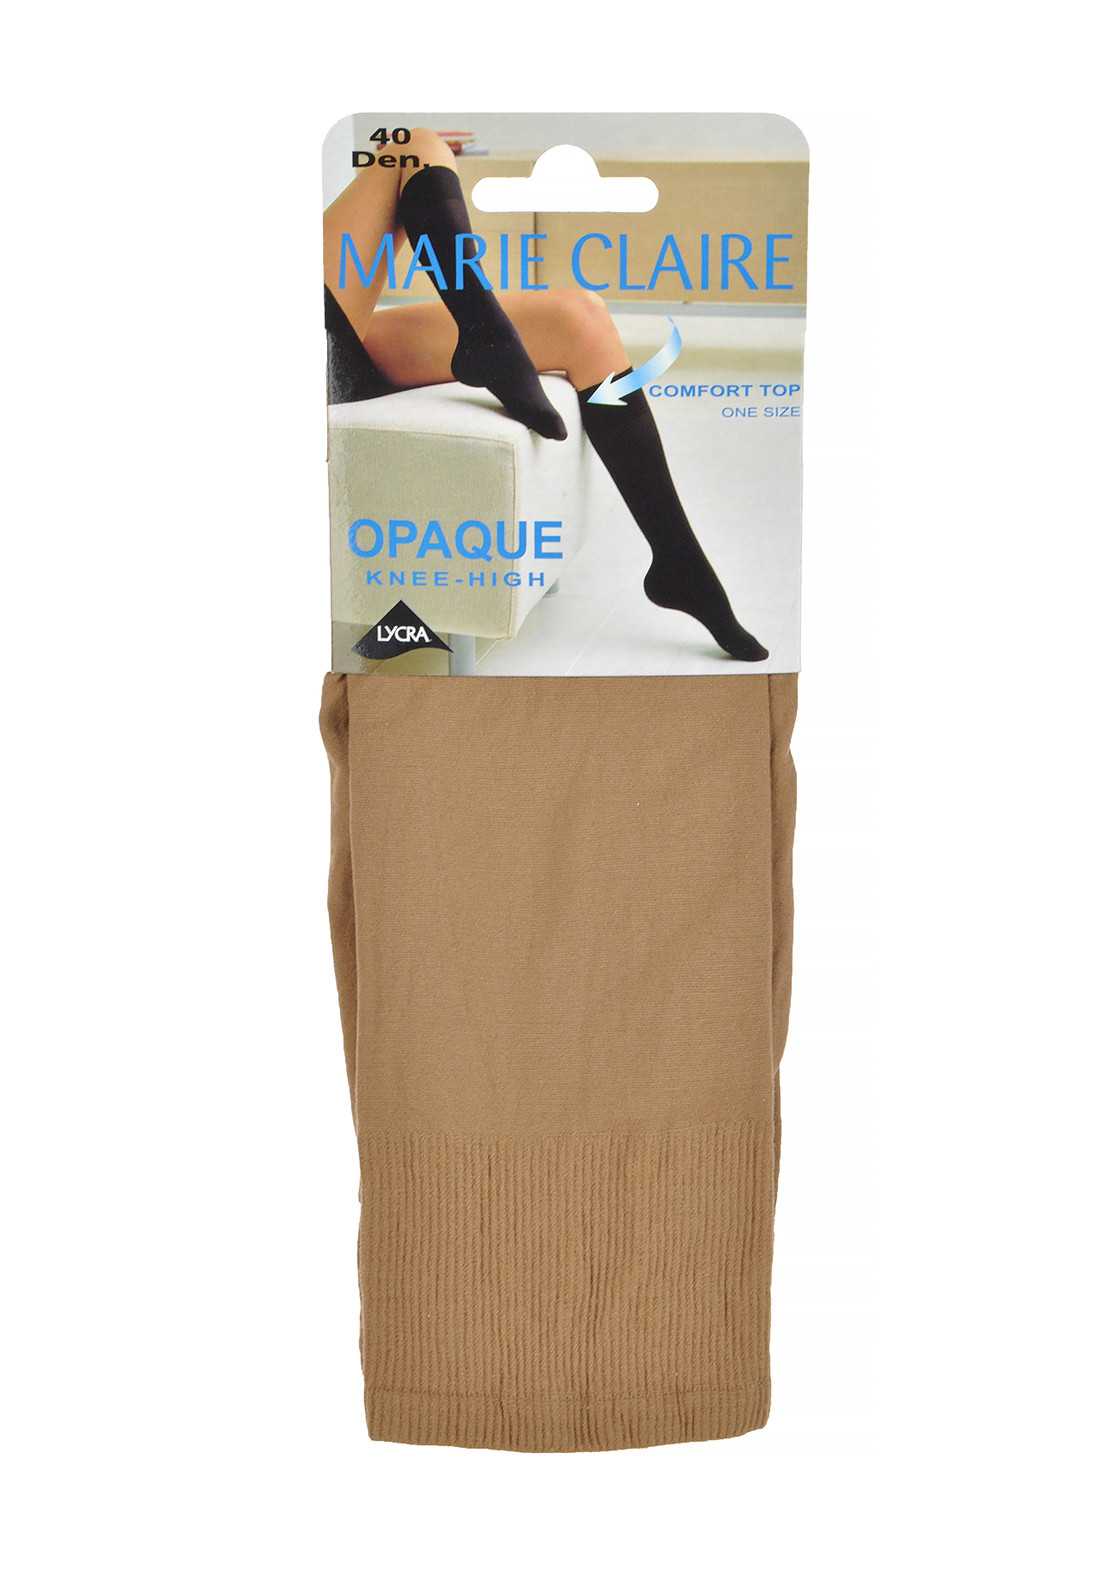 Marie Claire 40 Denier Opaque Knee High Stockings Natural, One Size